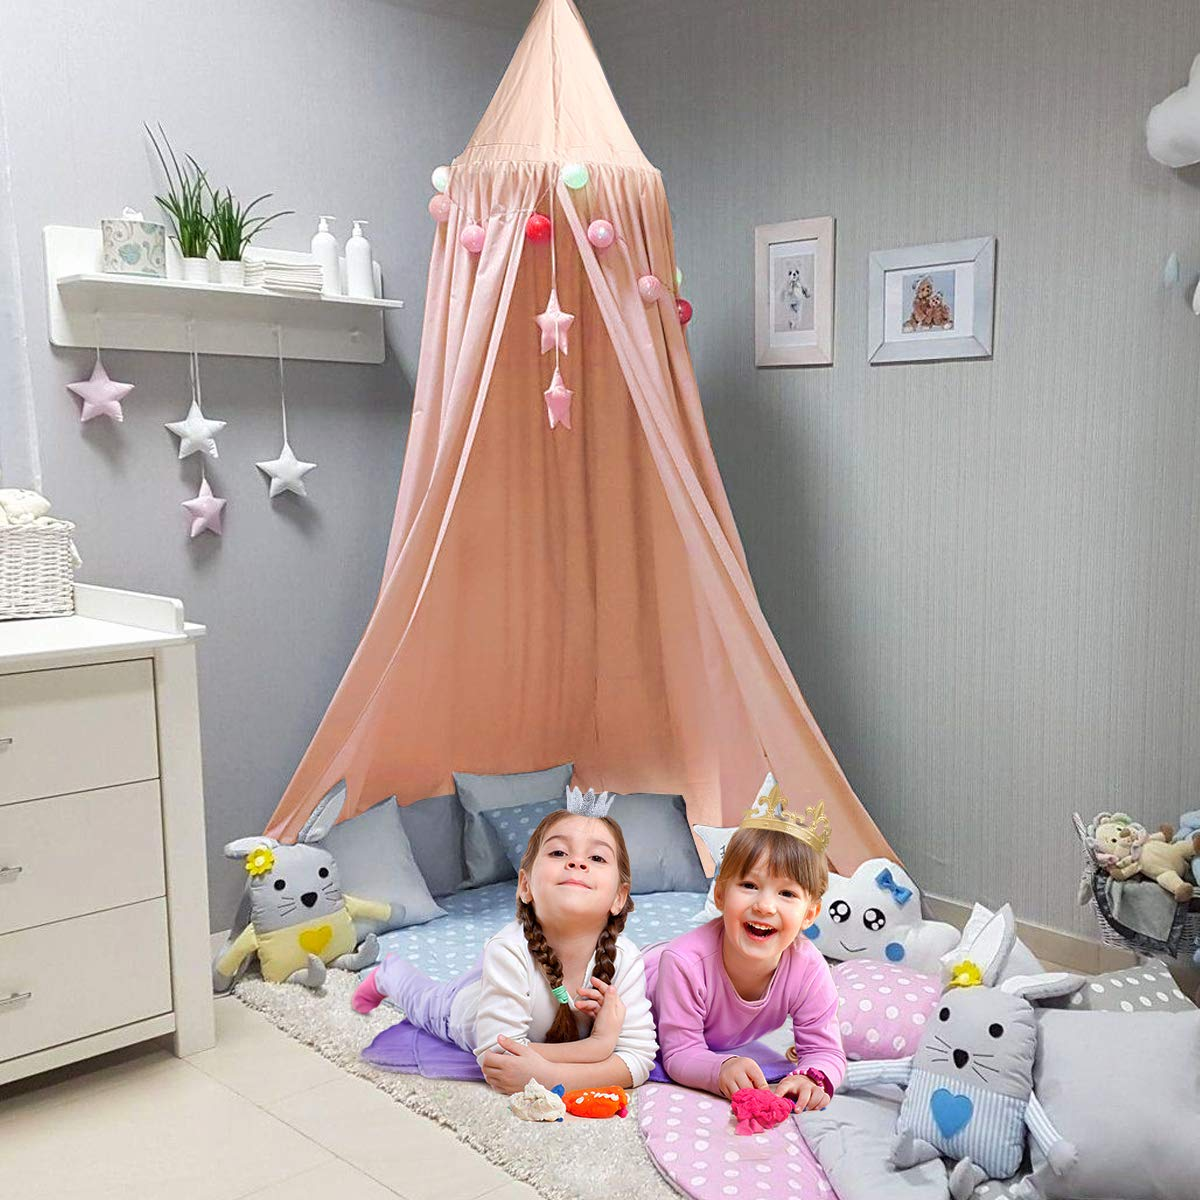 Jeteven Cotton Canvas Dome Bed Canopy Kids Play Tent Mosquito Net for Baby Kids Indoor Outdoor Playing Reading Height 240cm/94.5in Pink